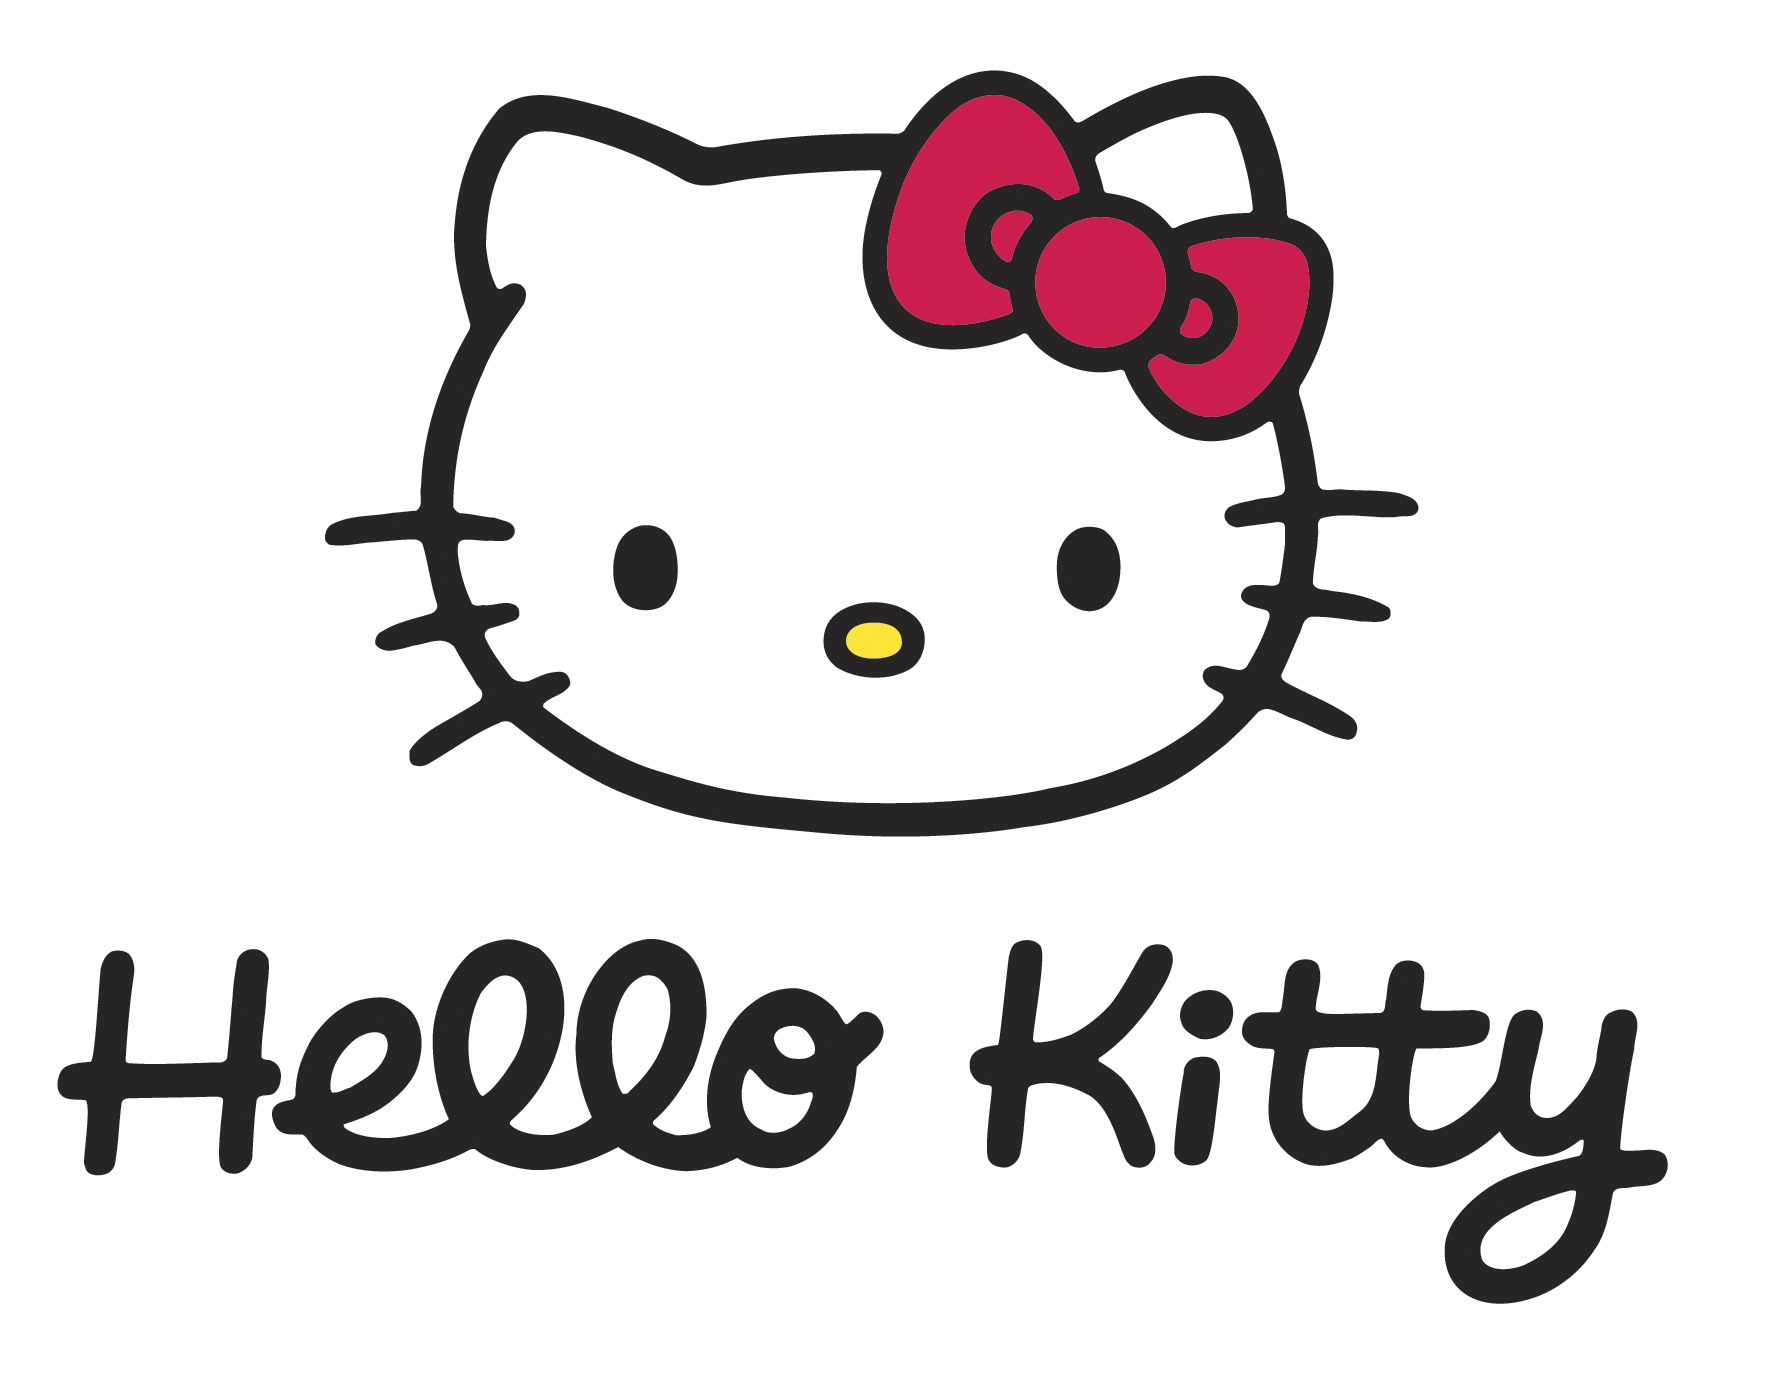 Revelan que Hello Kitty no es un gato